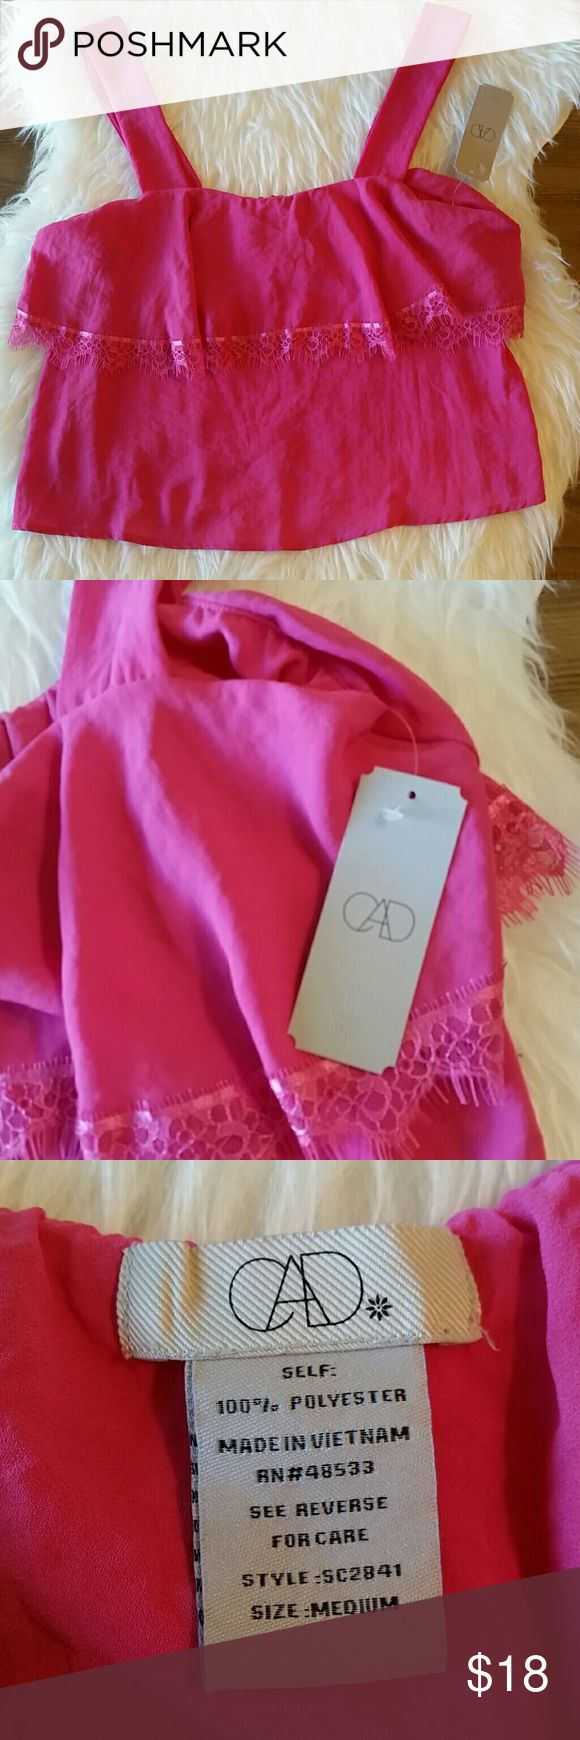 CAD Lace Detail Tank in Pink NWT NEW with Tags! Super cute pink tank! Perfect for Valentine's Day! Wear it under a cardigan or jacket with jeans and boots! Foldover fabric with lace detail. Wide straps.  Size medium Laying flat measures approximately  Bust 16 inches- has elastic so will stretch  Length 20 inches  Open to reasonable offers. Bundle and save! CAD Tops Tank Tops